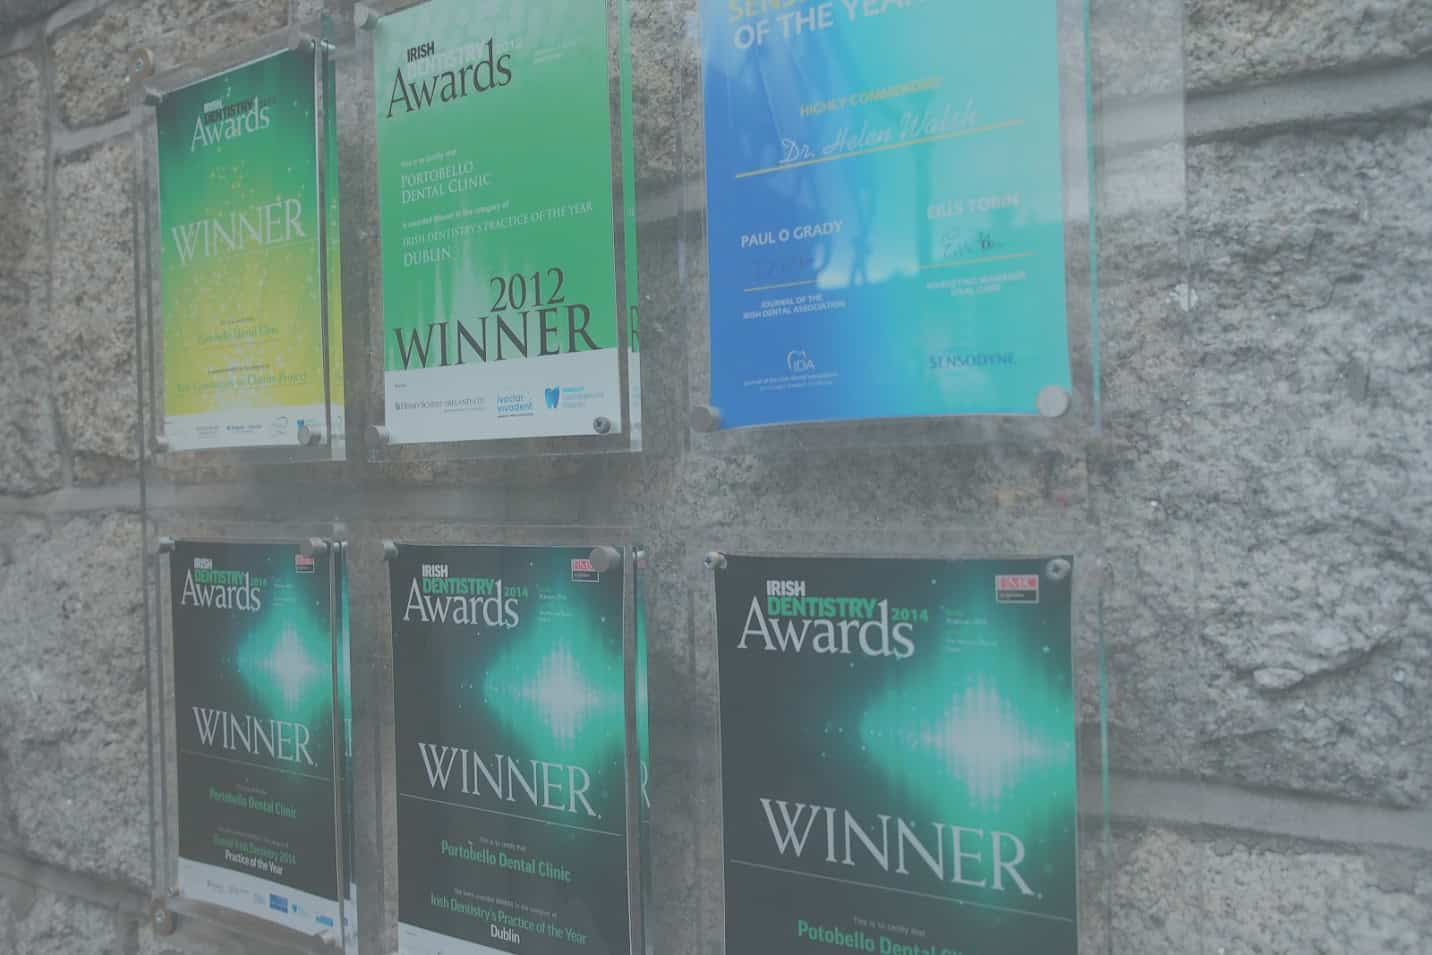 Awards won by Portobello Dental Clinic